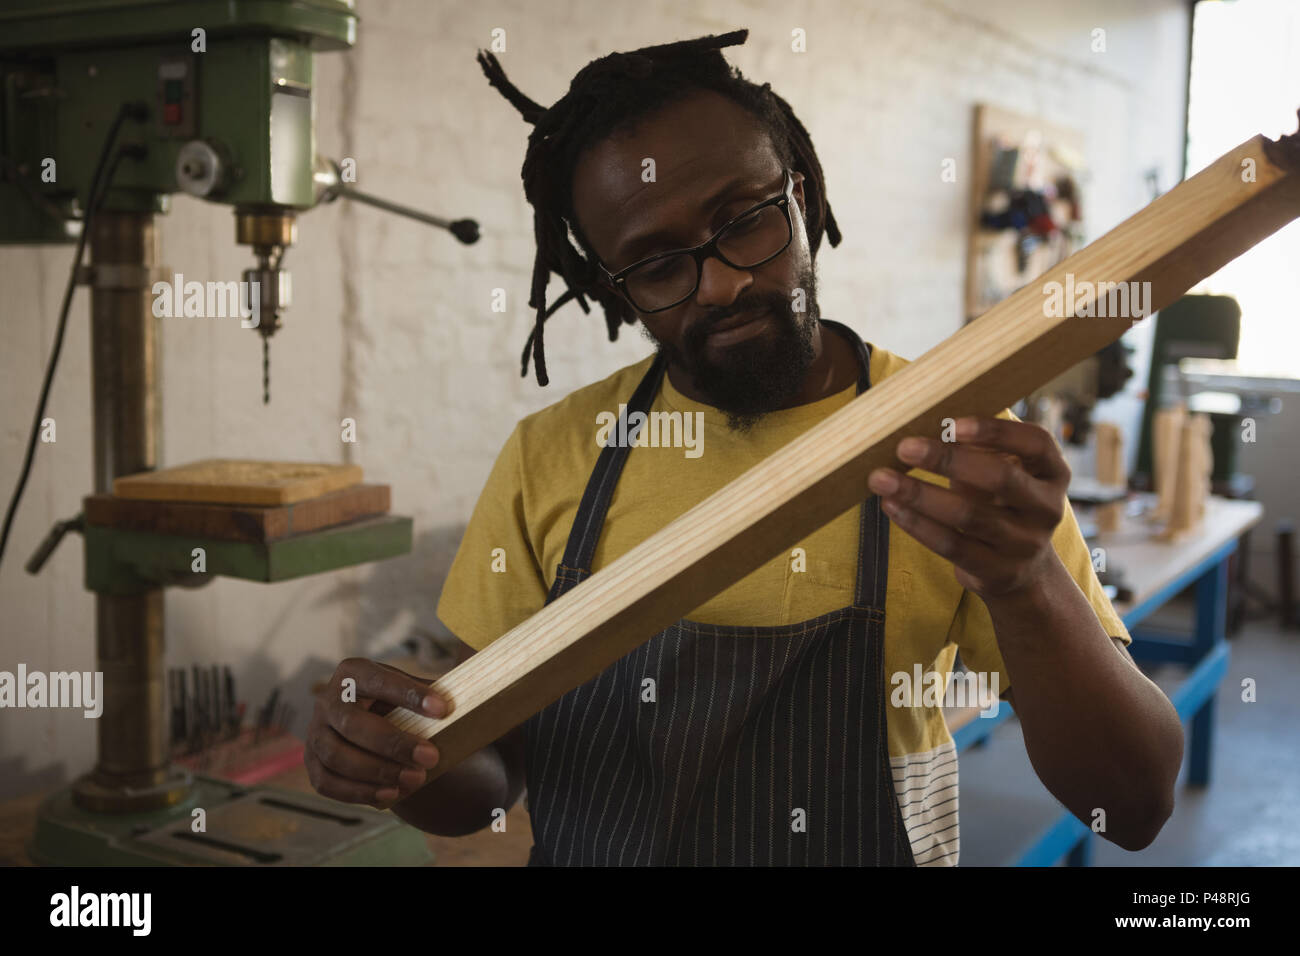 Carpenter looking at wooden plank - Stock Image